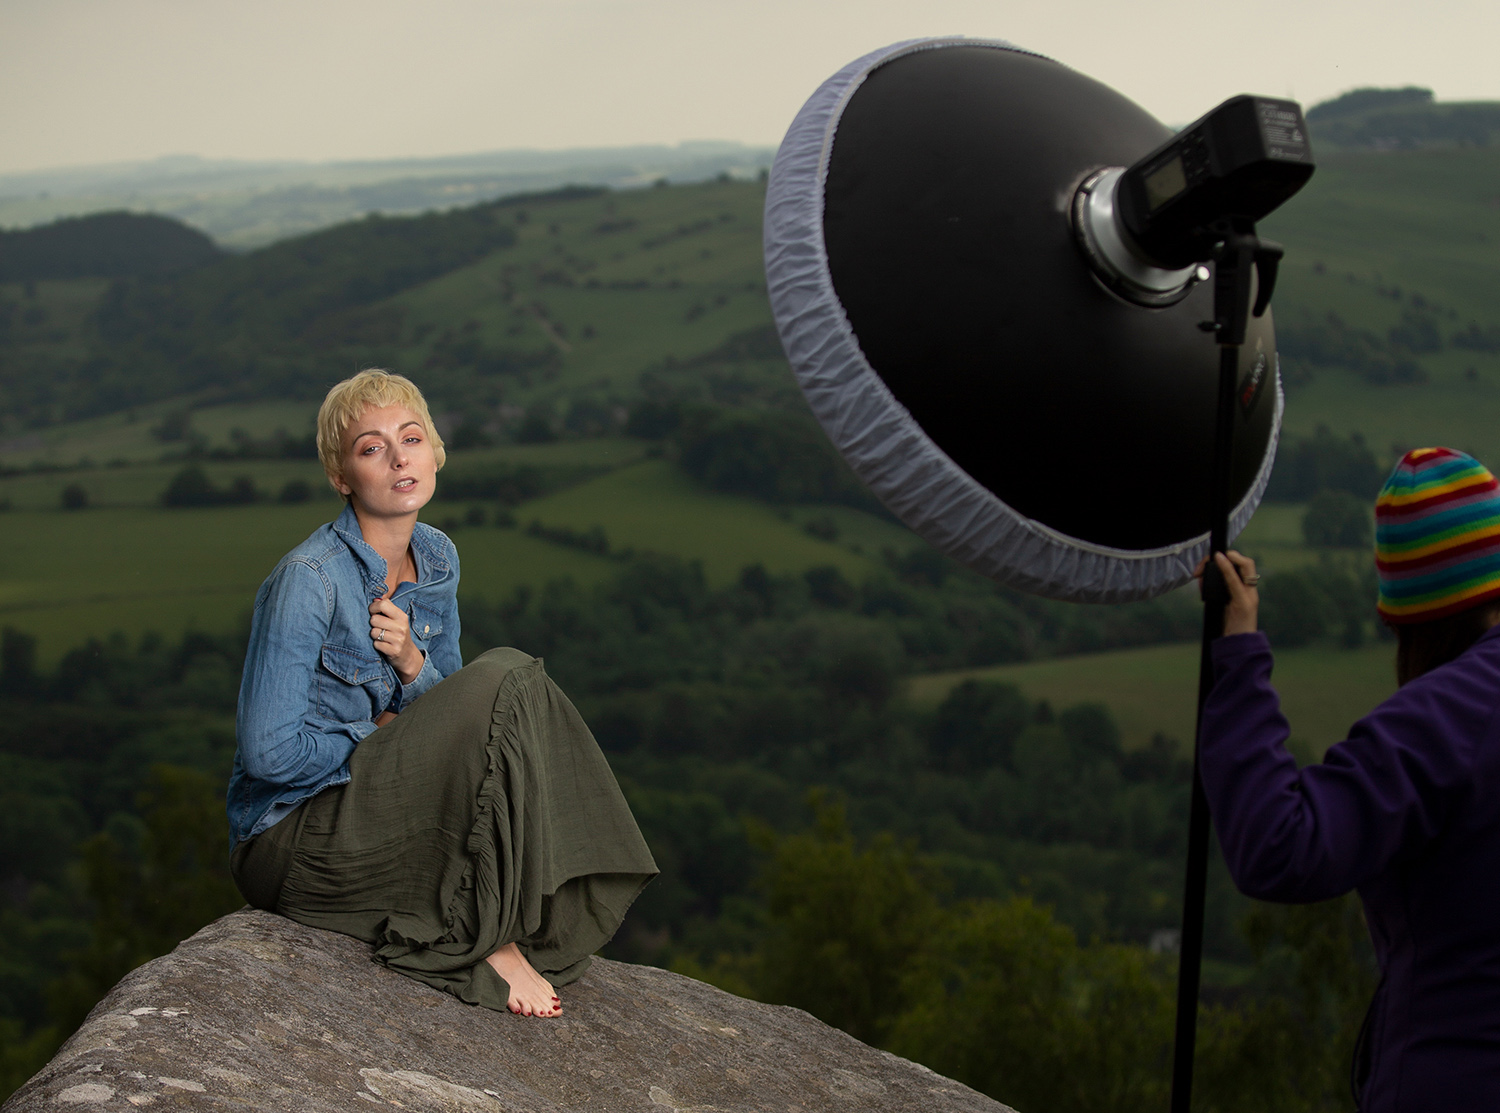 outdoor portrait setup - Light Review: The PiXAPRO CITI600 Portable Strobe (Godox Wistro AD600BM)